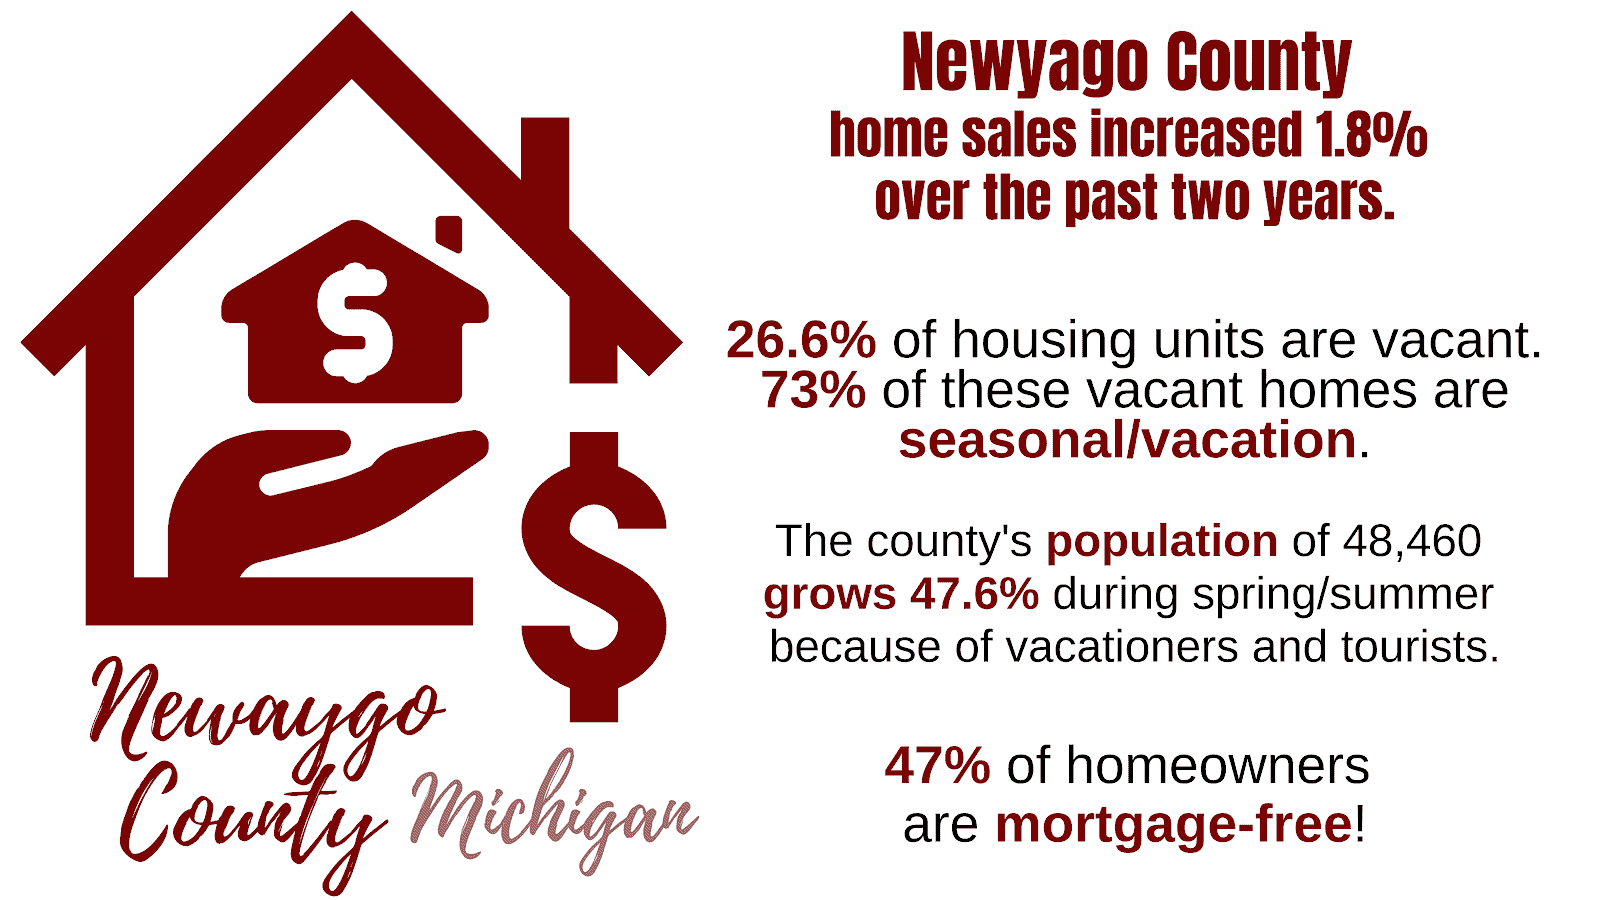 Owner Occupancy Rate for Newaygo County